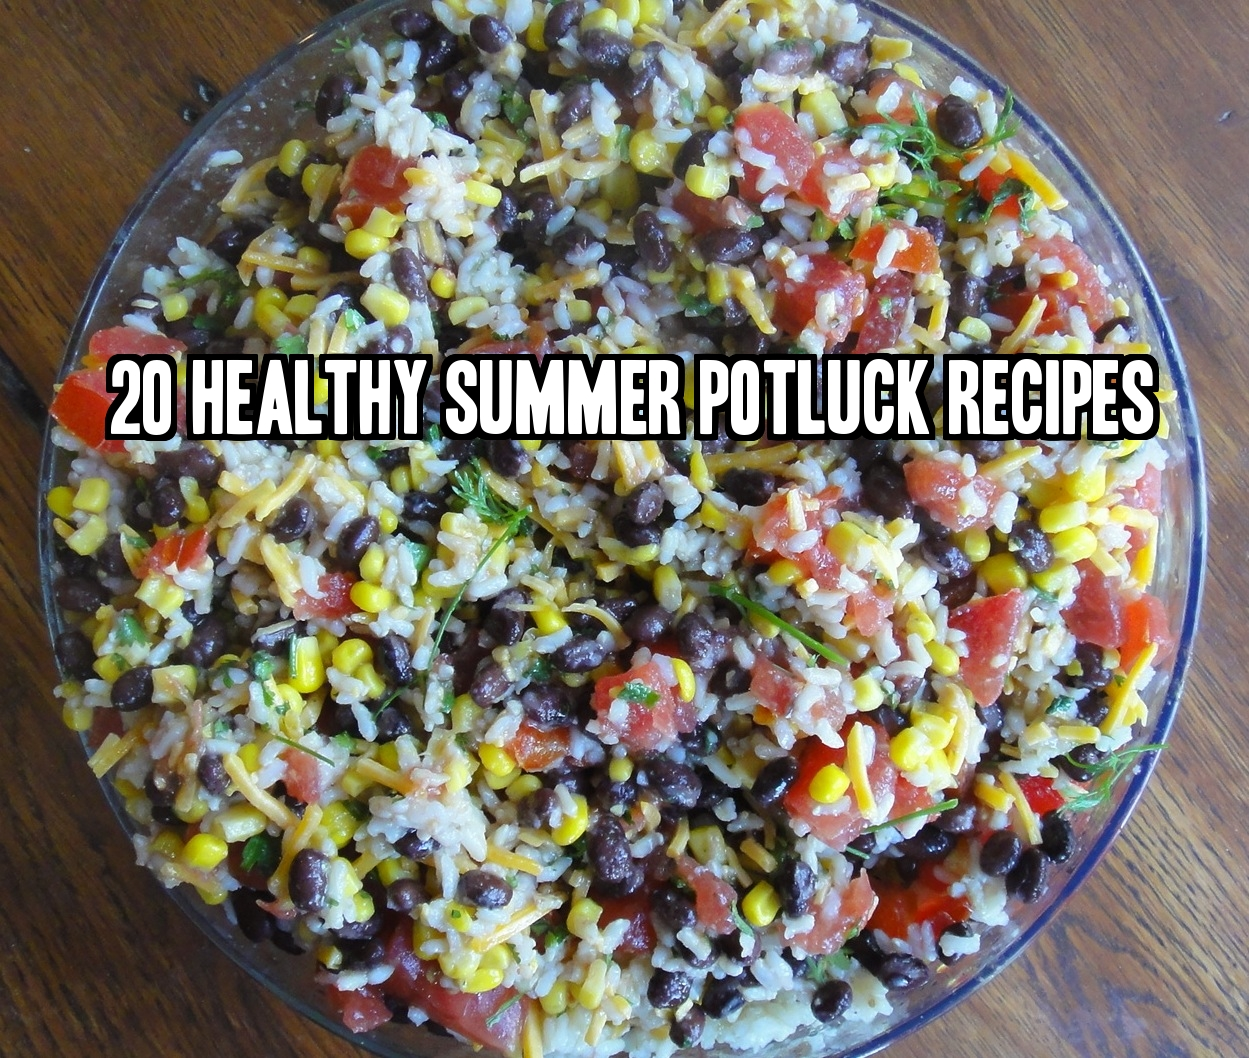 20 Healthy Summer Potluck Recipes